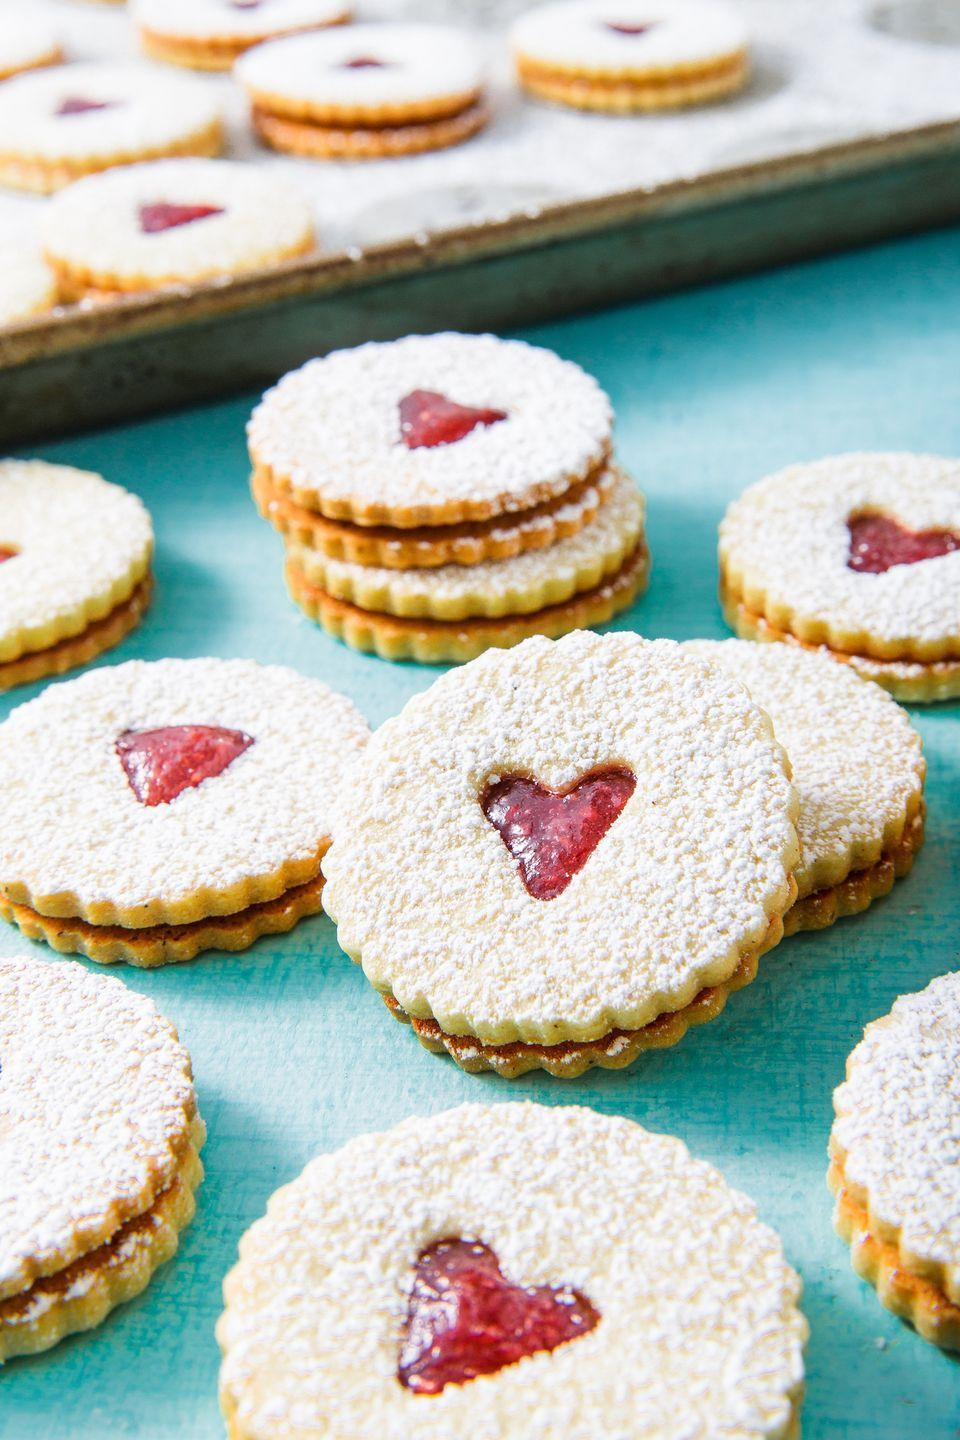 """<p>We love to gift this cookie...and to make a second batch for ourselves. </p><p>Get the recipe from <a href=""""https://www.delish.com/holiday-recipes/christmas/a25400083/classic-linzer-cookies-recipe/"""" rel=""""nofollow noopener"""" target=""""_blank"""" data-ylk=""""slk:Delish"""" class=""""link rapid-noclick-resp"""">Delish</a>. </p>"""